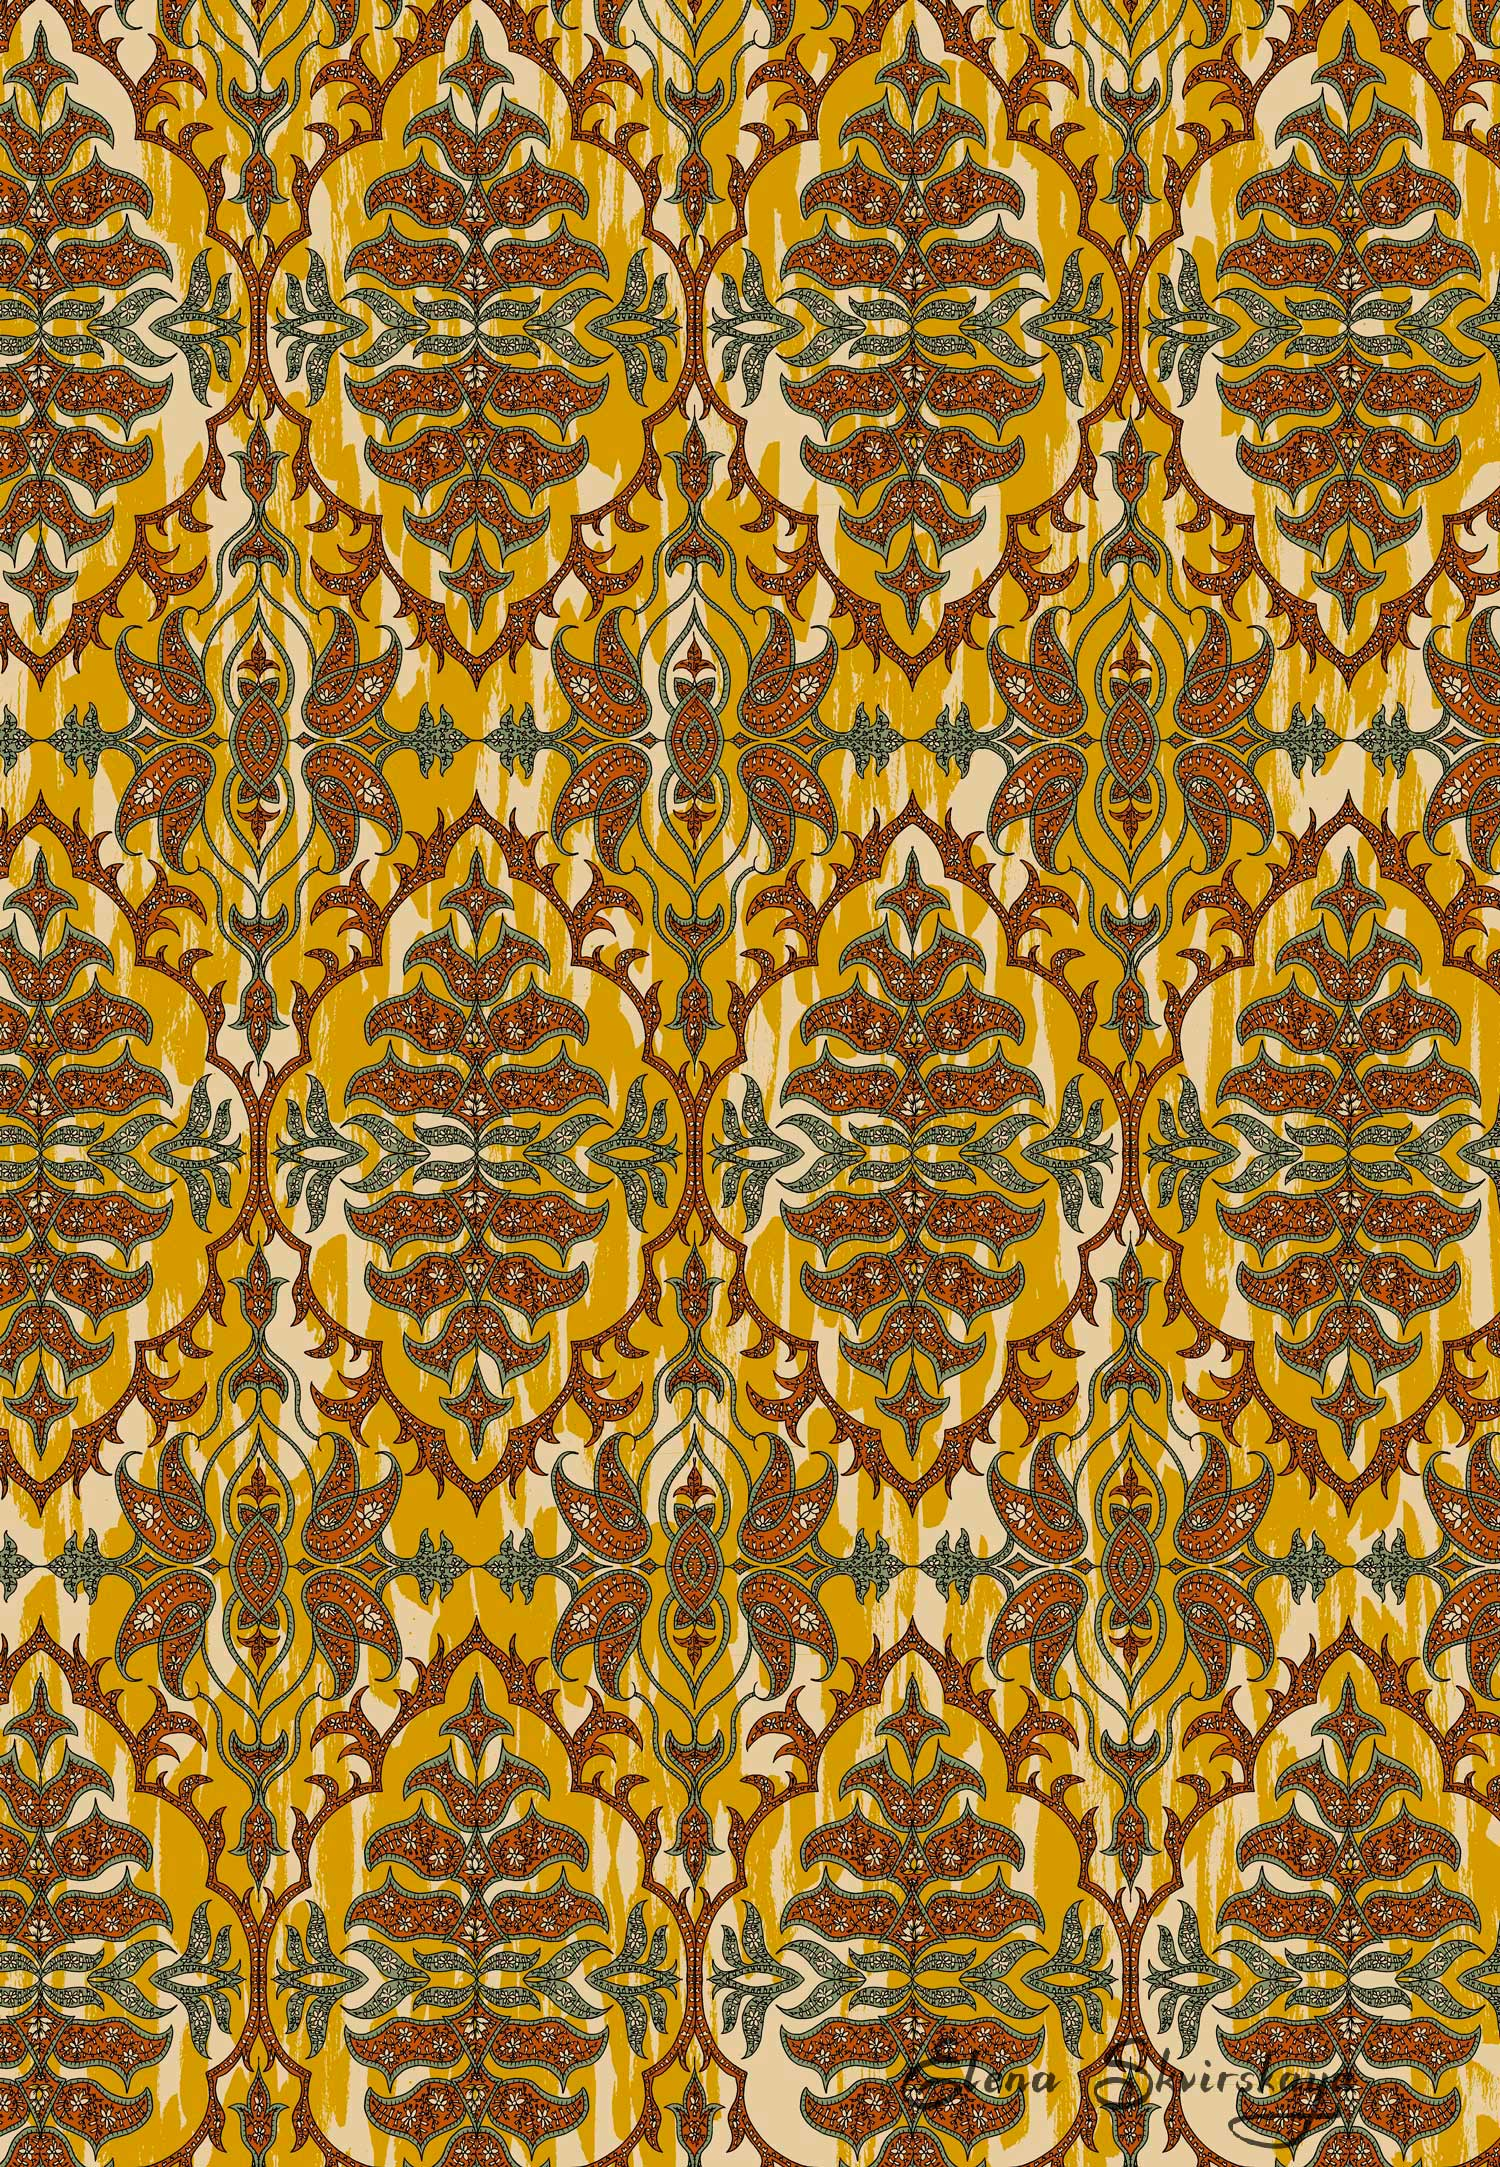 ornamental design for women's apparel or home decor, inspired by Indian paisley fabrics